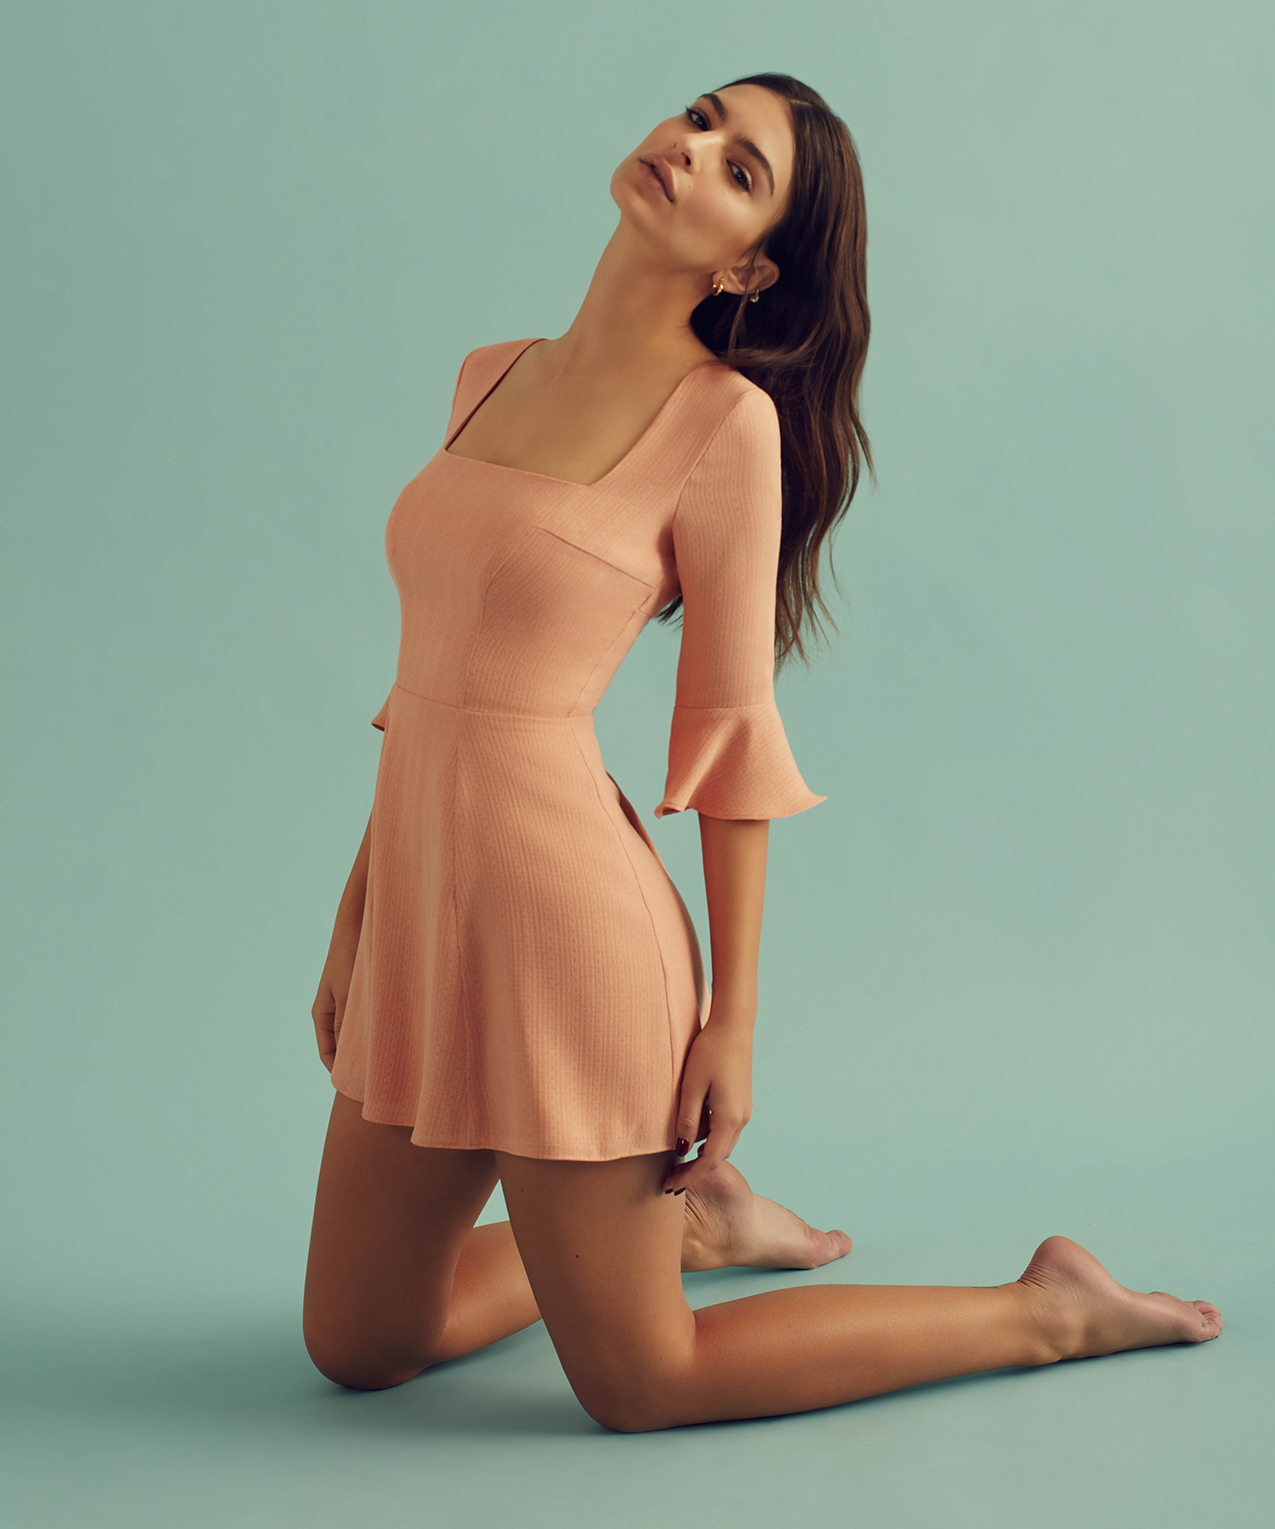 Emily Ratajkowski Teams Up with Christy Dawn to Create a Dress That Gives Back